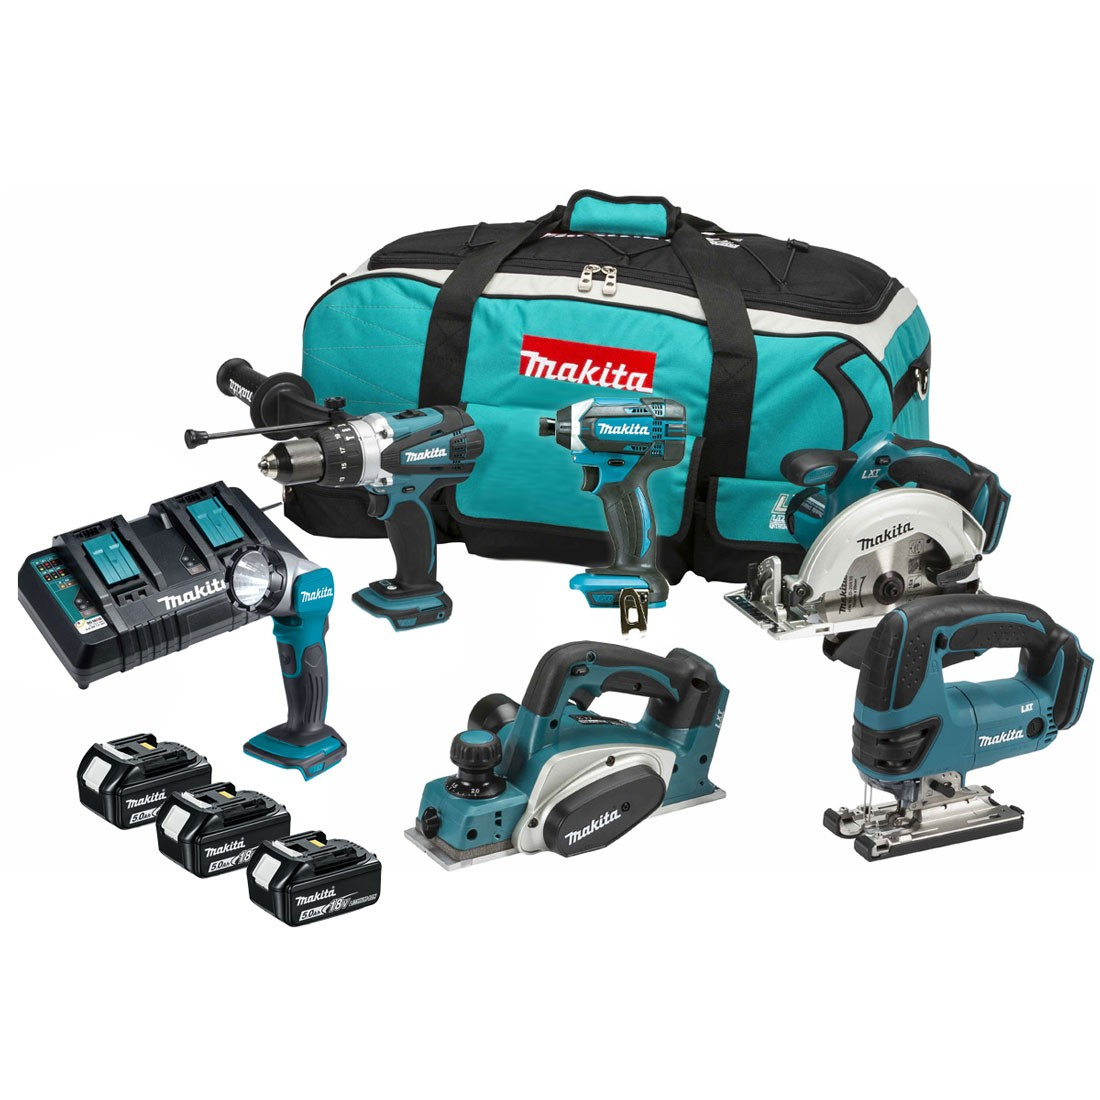 makita dlx6067pt 18v 6 piece kit inc 3x 5ah batts with twin charger powertool world. Black Bedroom Furniture Sets. Home Design Ideas